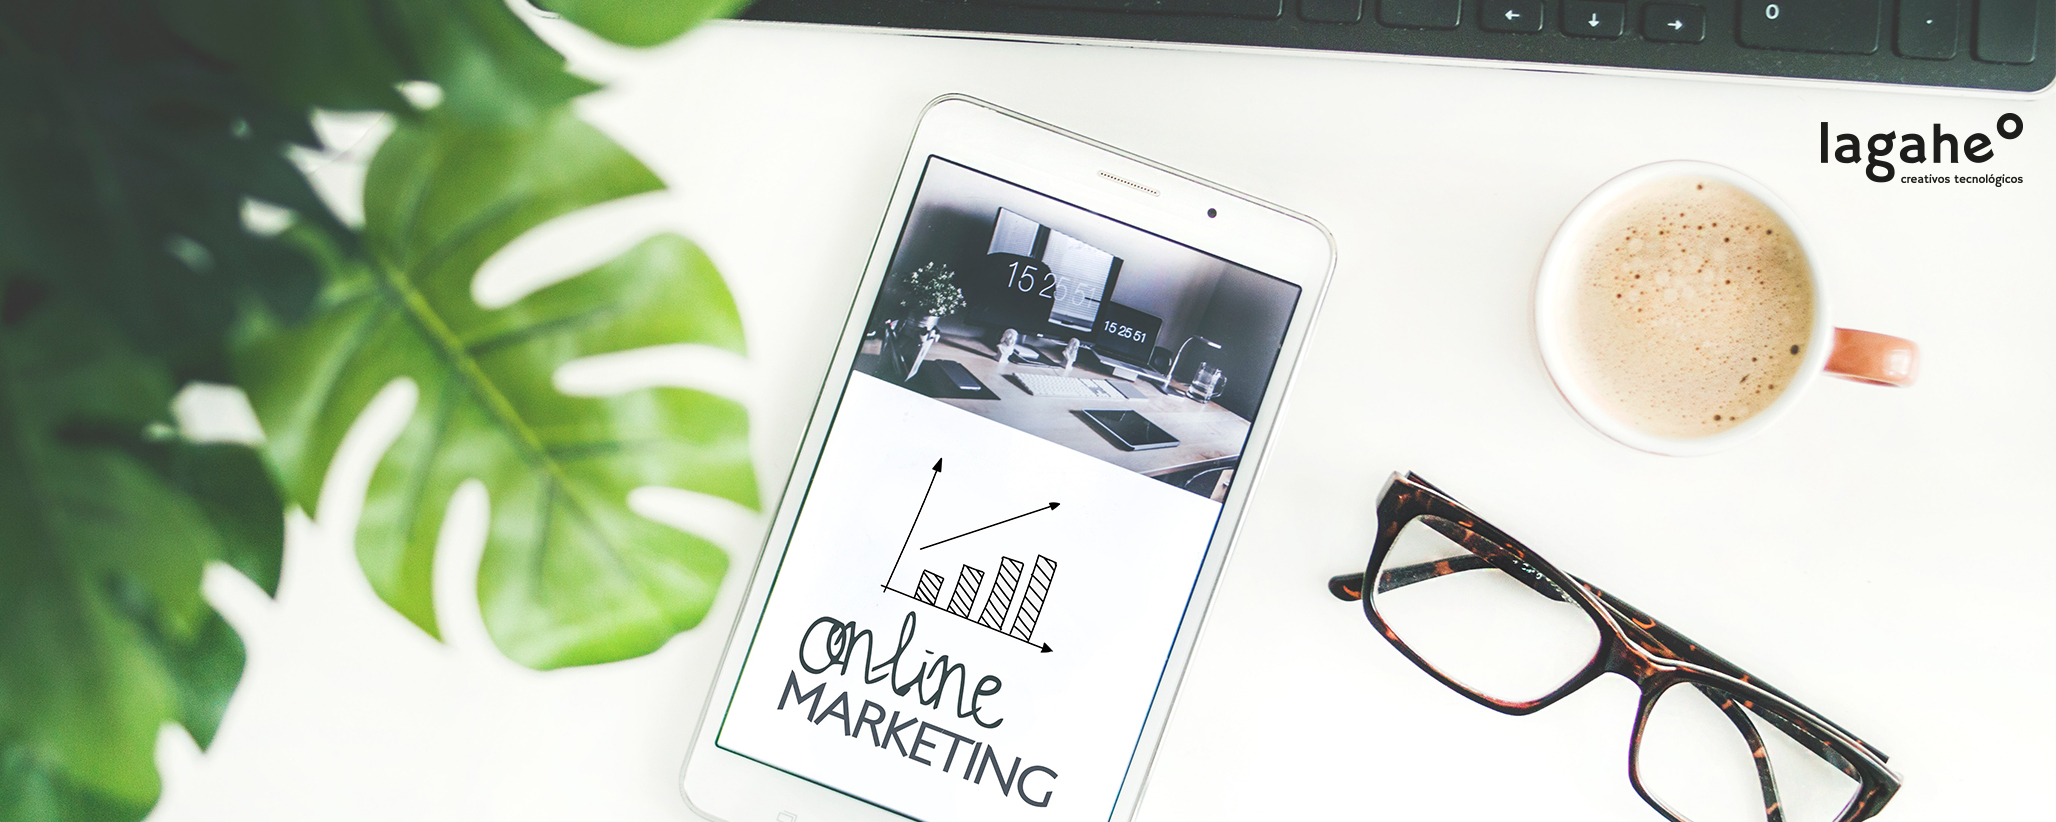 Tendencias de marketing digital en 2019, ¡toma nota!